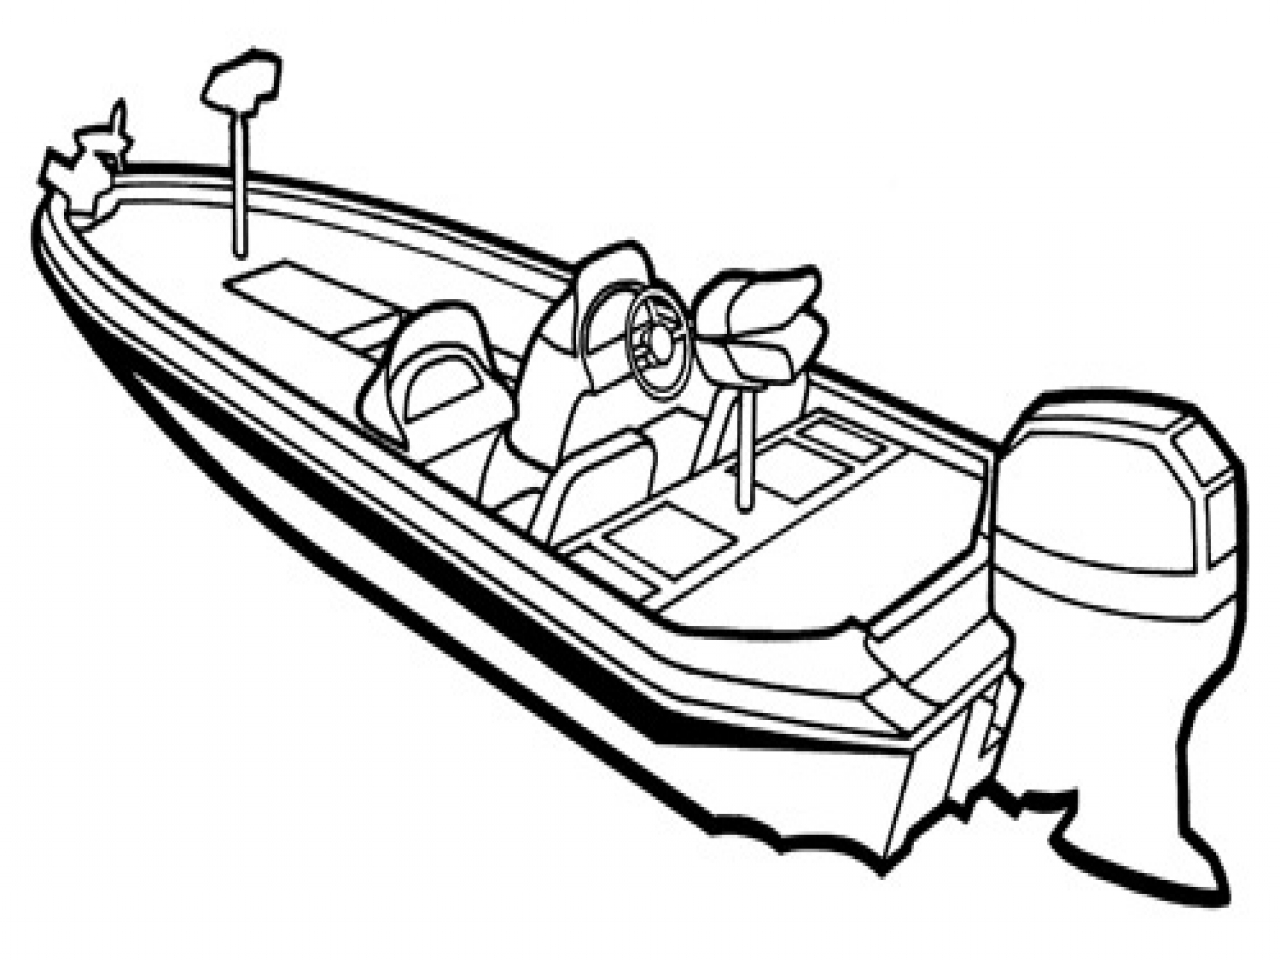 lego boat coloring page boat drawing images at getdrawings free download boat page coloring lego